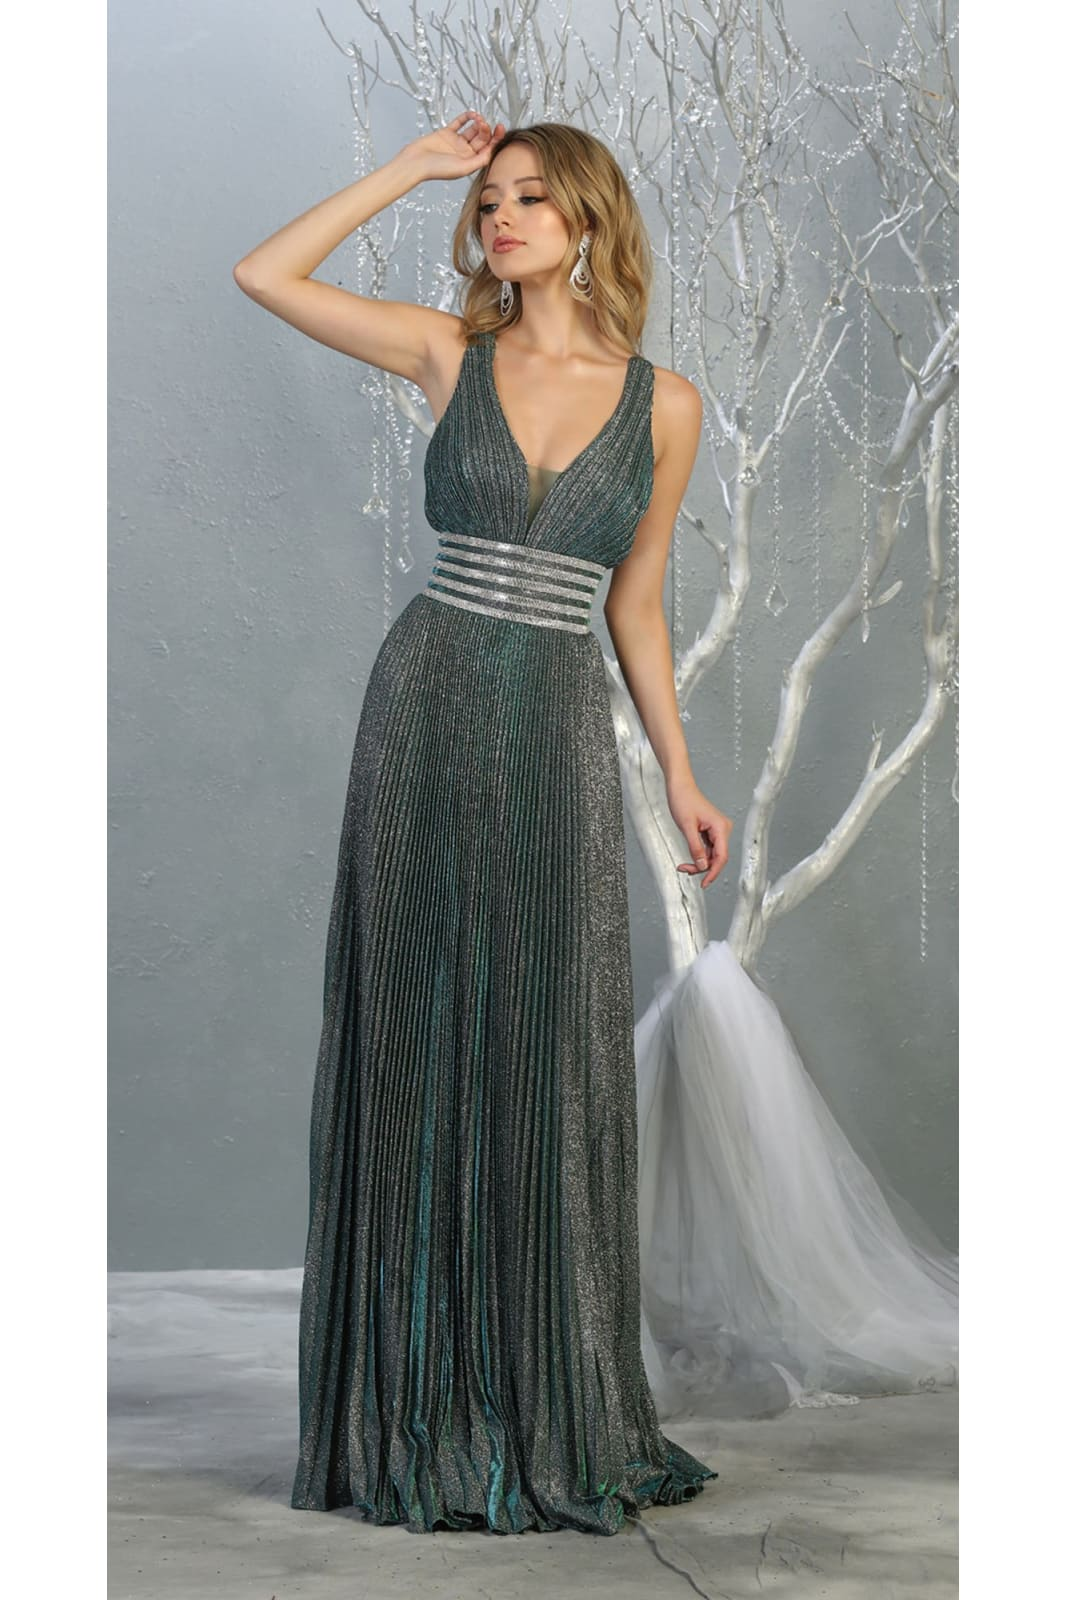 Strappy Prom Dress - LA7828 - GREEN / 2 - Dress